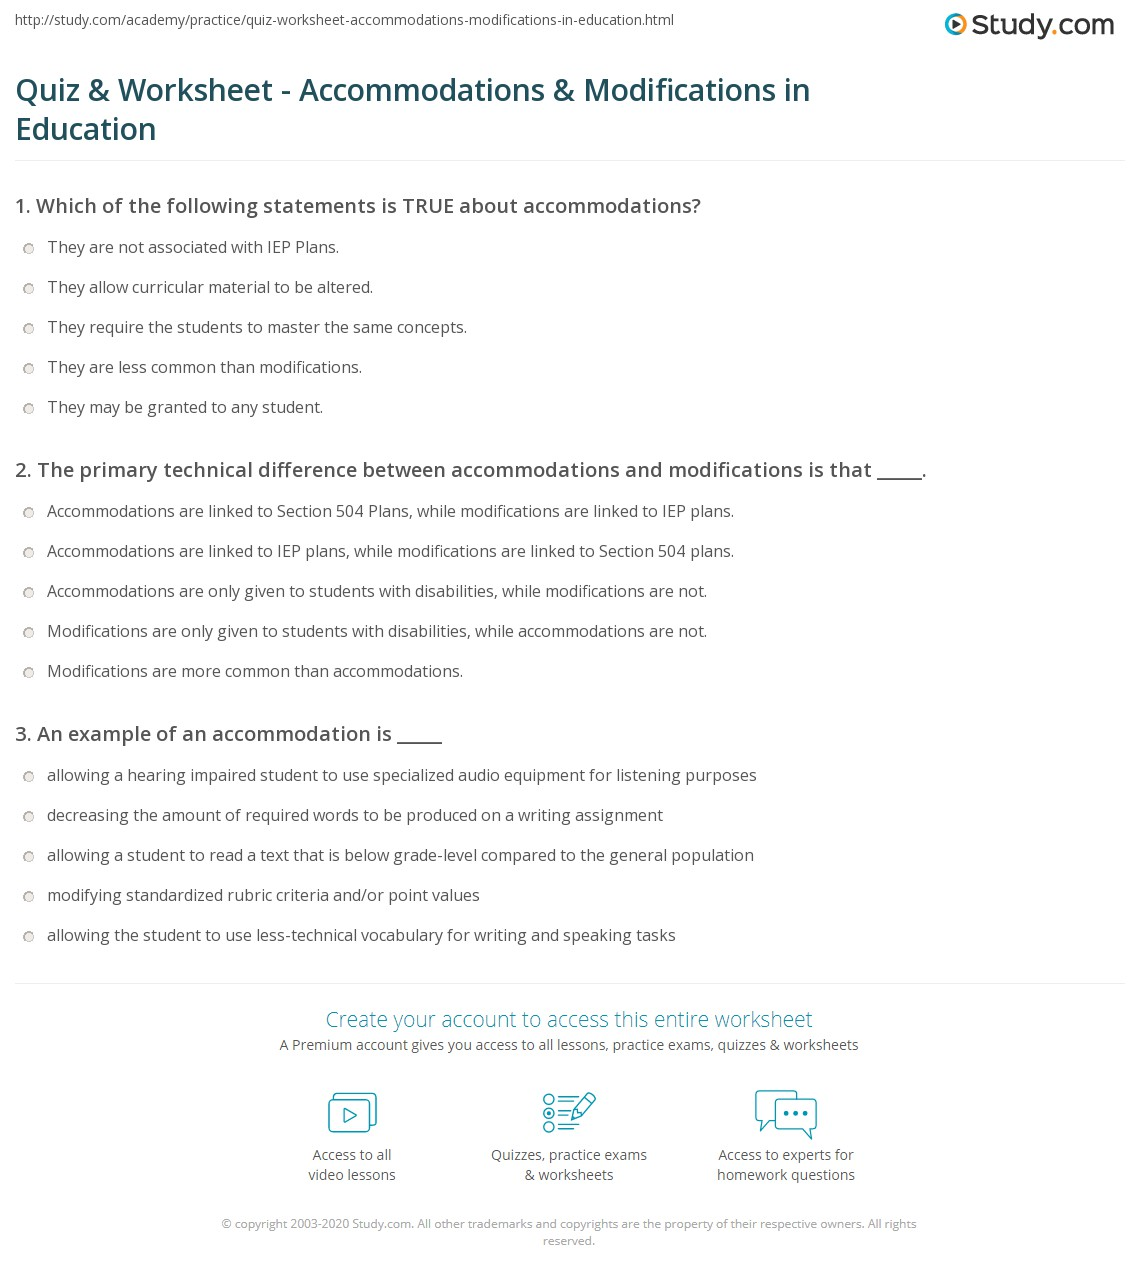 The Difference Between Accommodations And Modifications >> Quiz Worksheet Accommodations Modifications In Education